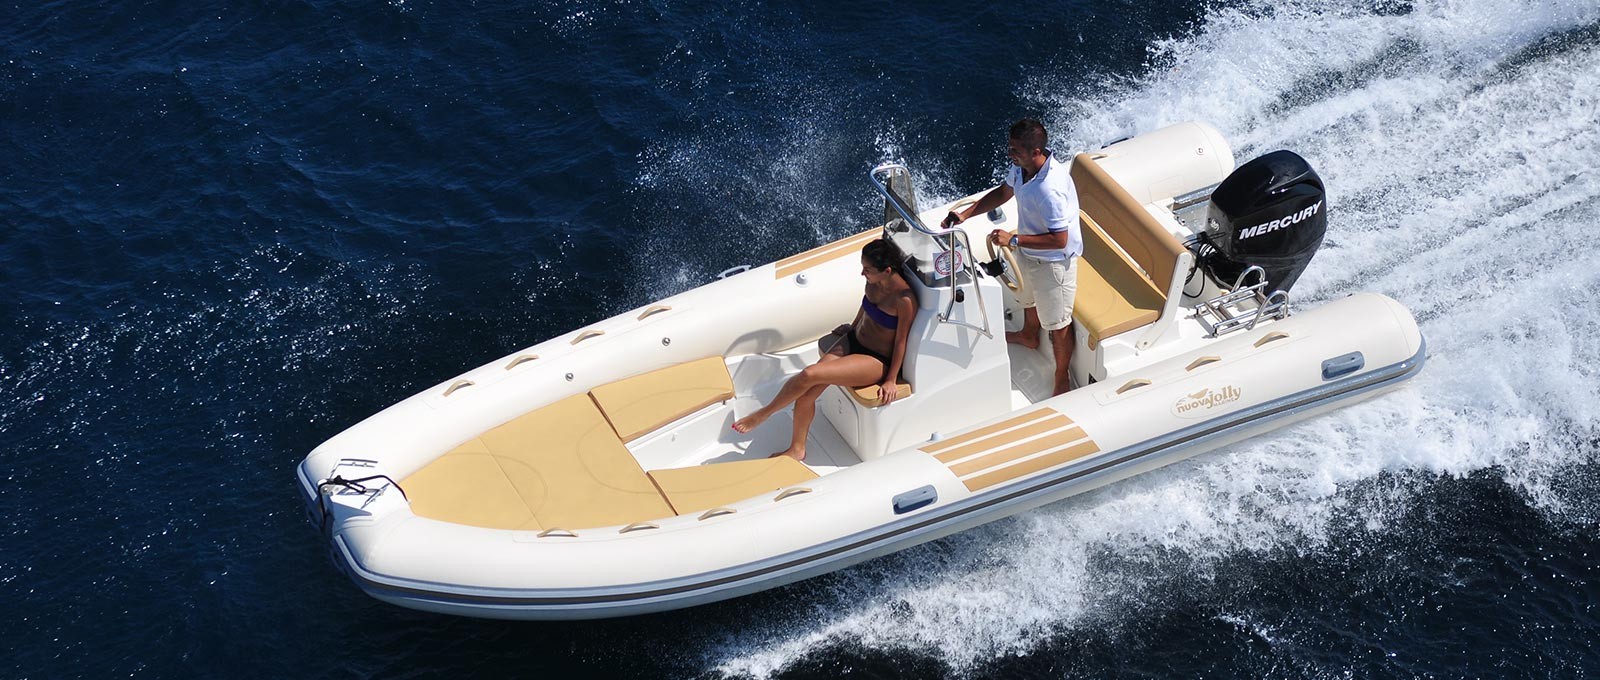 Nuova Jolly Nj 585 Gt - The Boutique Boat Company